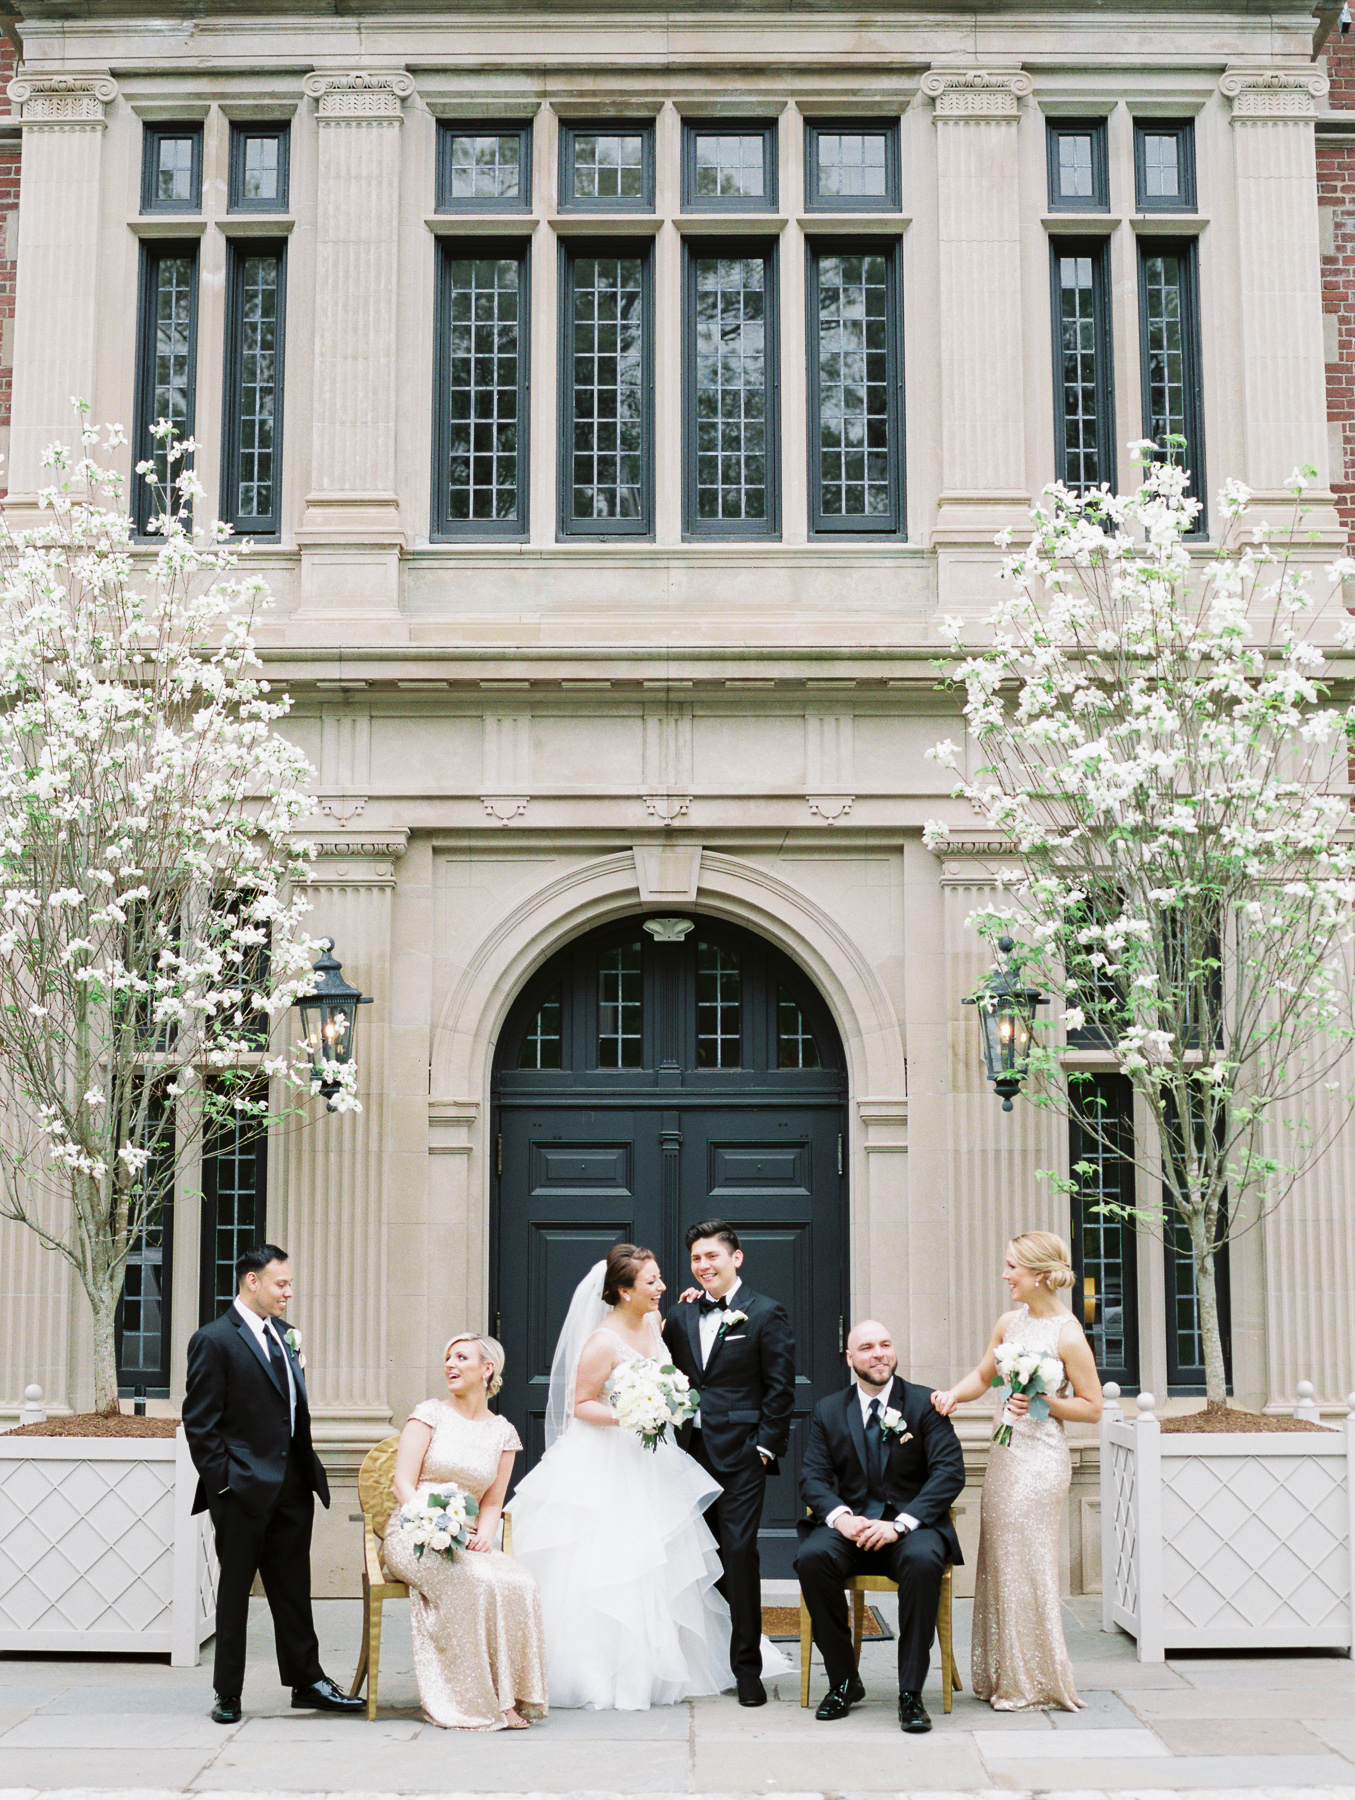 Vanity Fair Style Bridal Party Photo at Natirar Mansion in Gladstone, NJ by Michelle Lange Photography-37.jpg